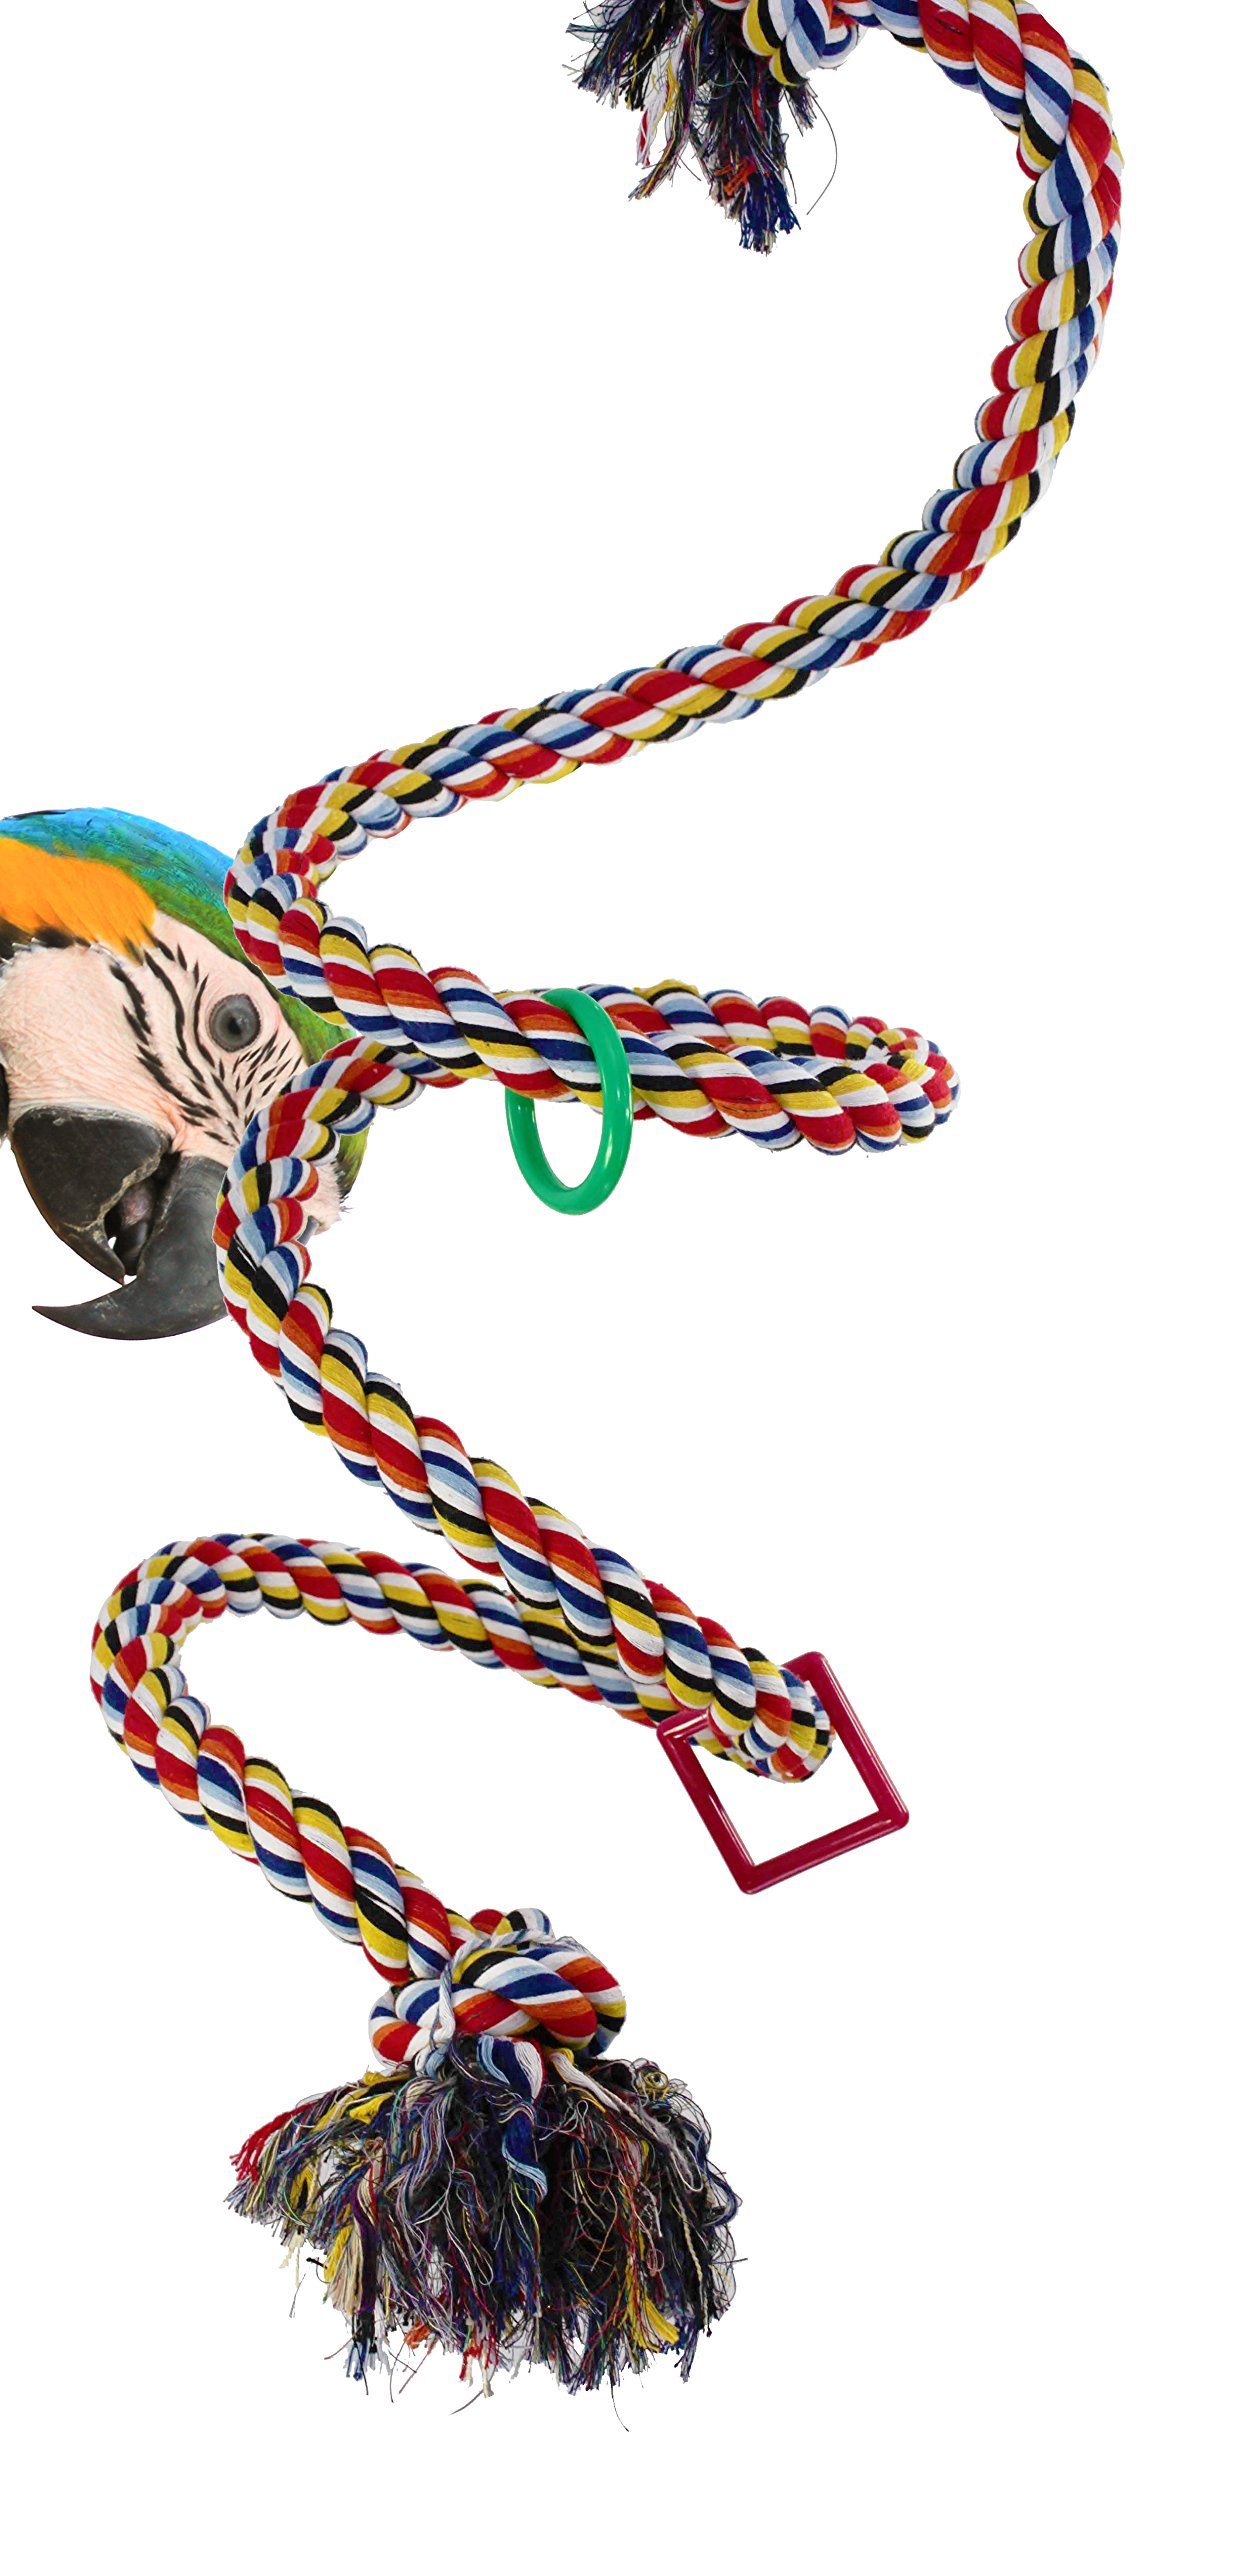 Bonka Bird Toys 1962 Huge Charm Rope Boing Coil Swing Bird Toy Parrot cage pet Stand Perch Macaw Cockatoo Amazon African Grey Play chew Aviary Bungee Accessories Colored Playground by Bonka Bird Toys